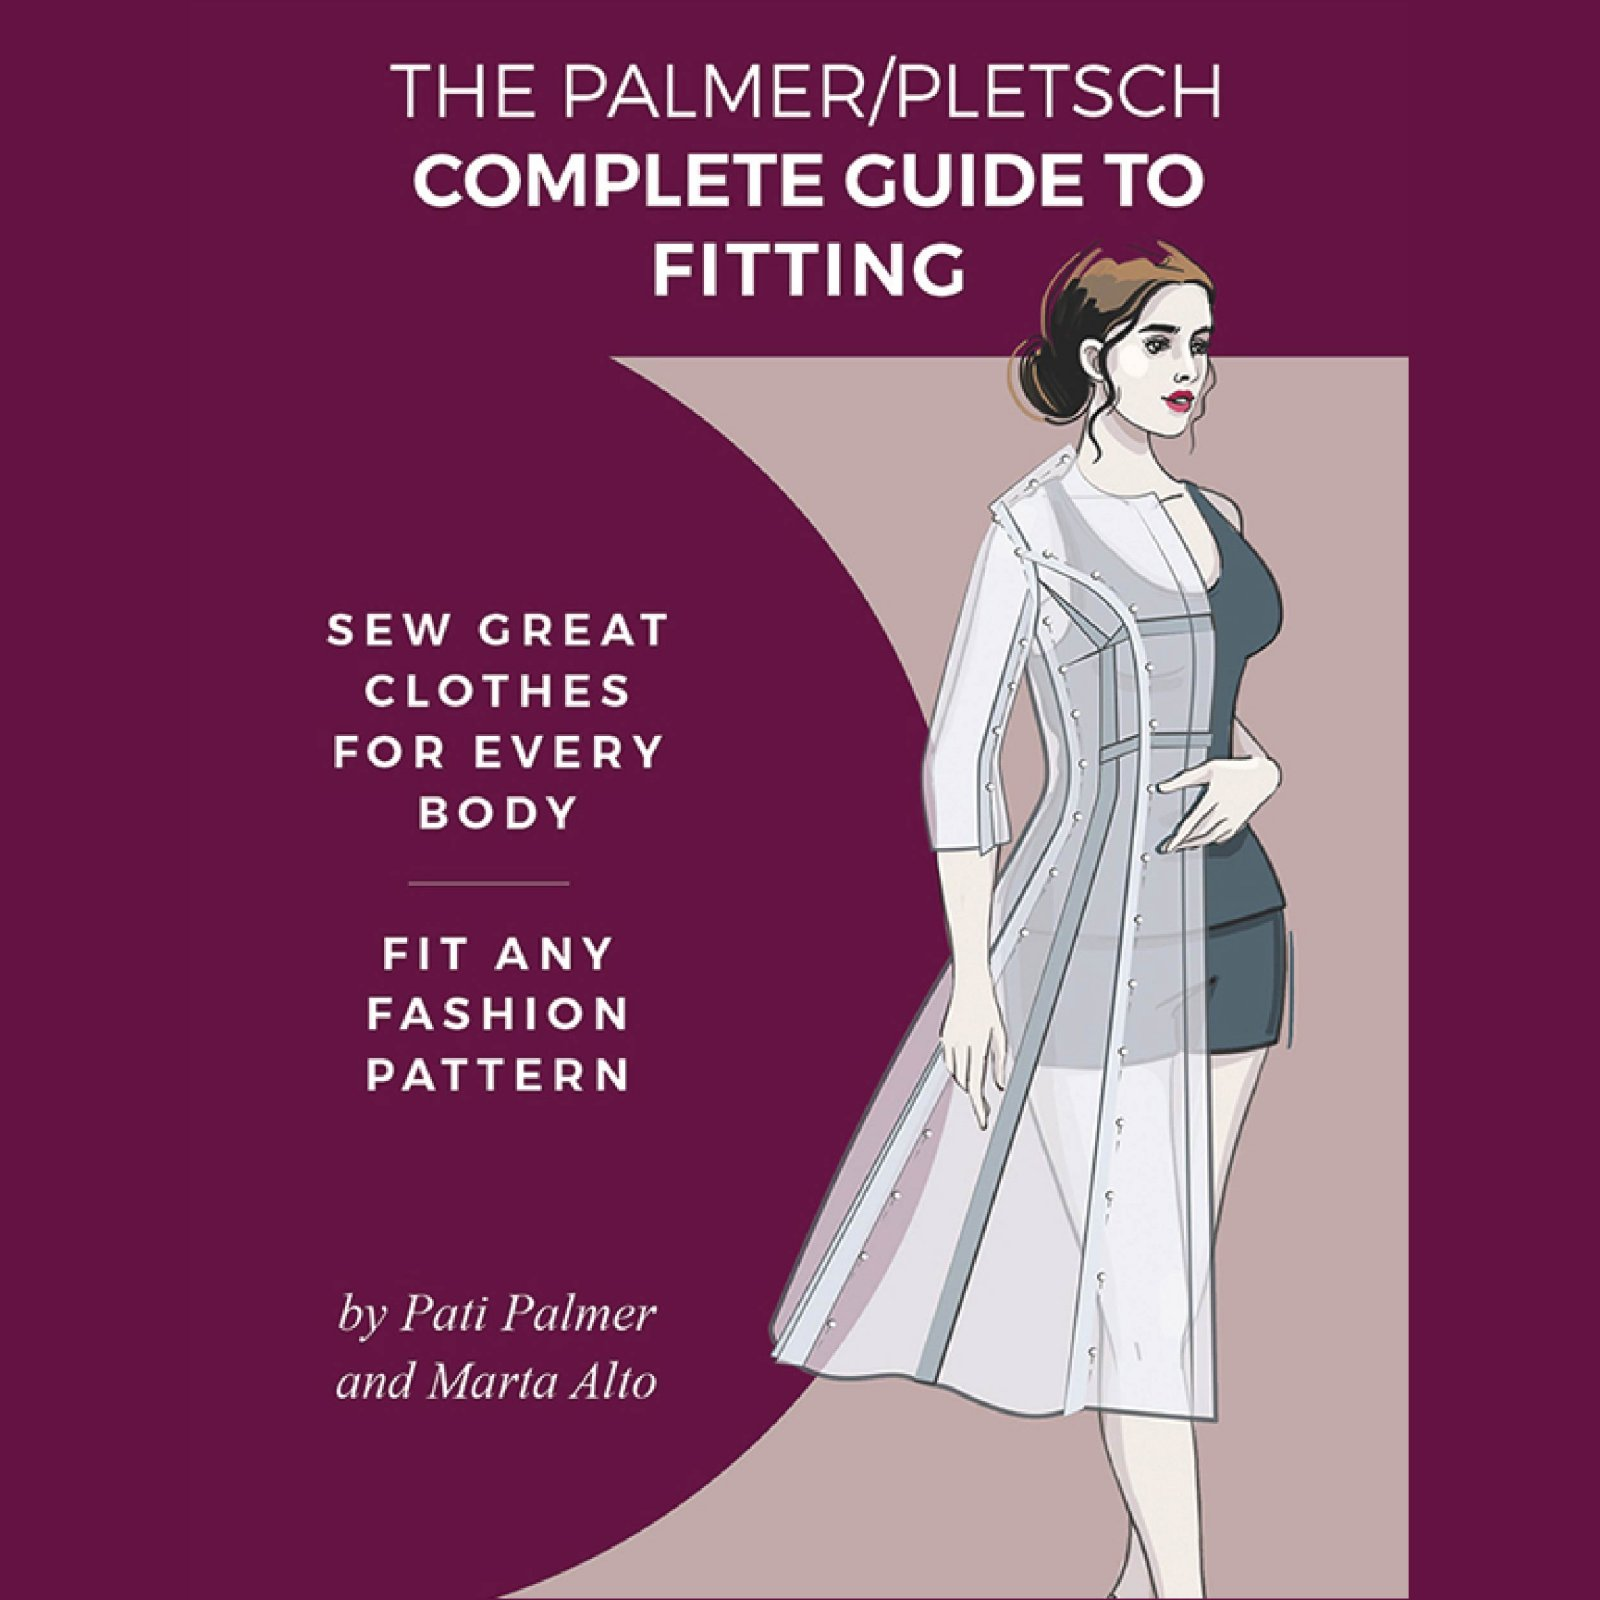 Complete Guide to Fitting by Palmer/Pletsch